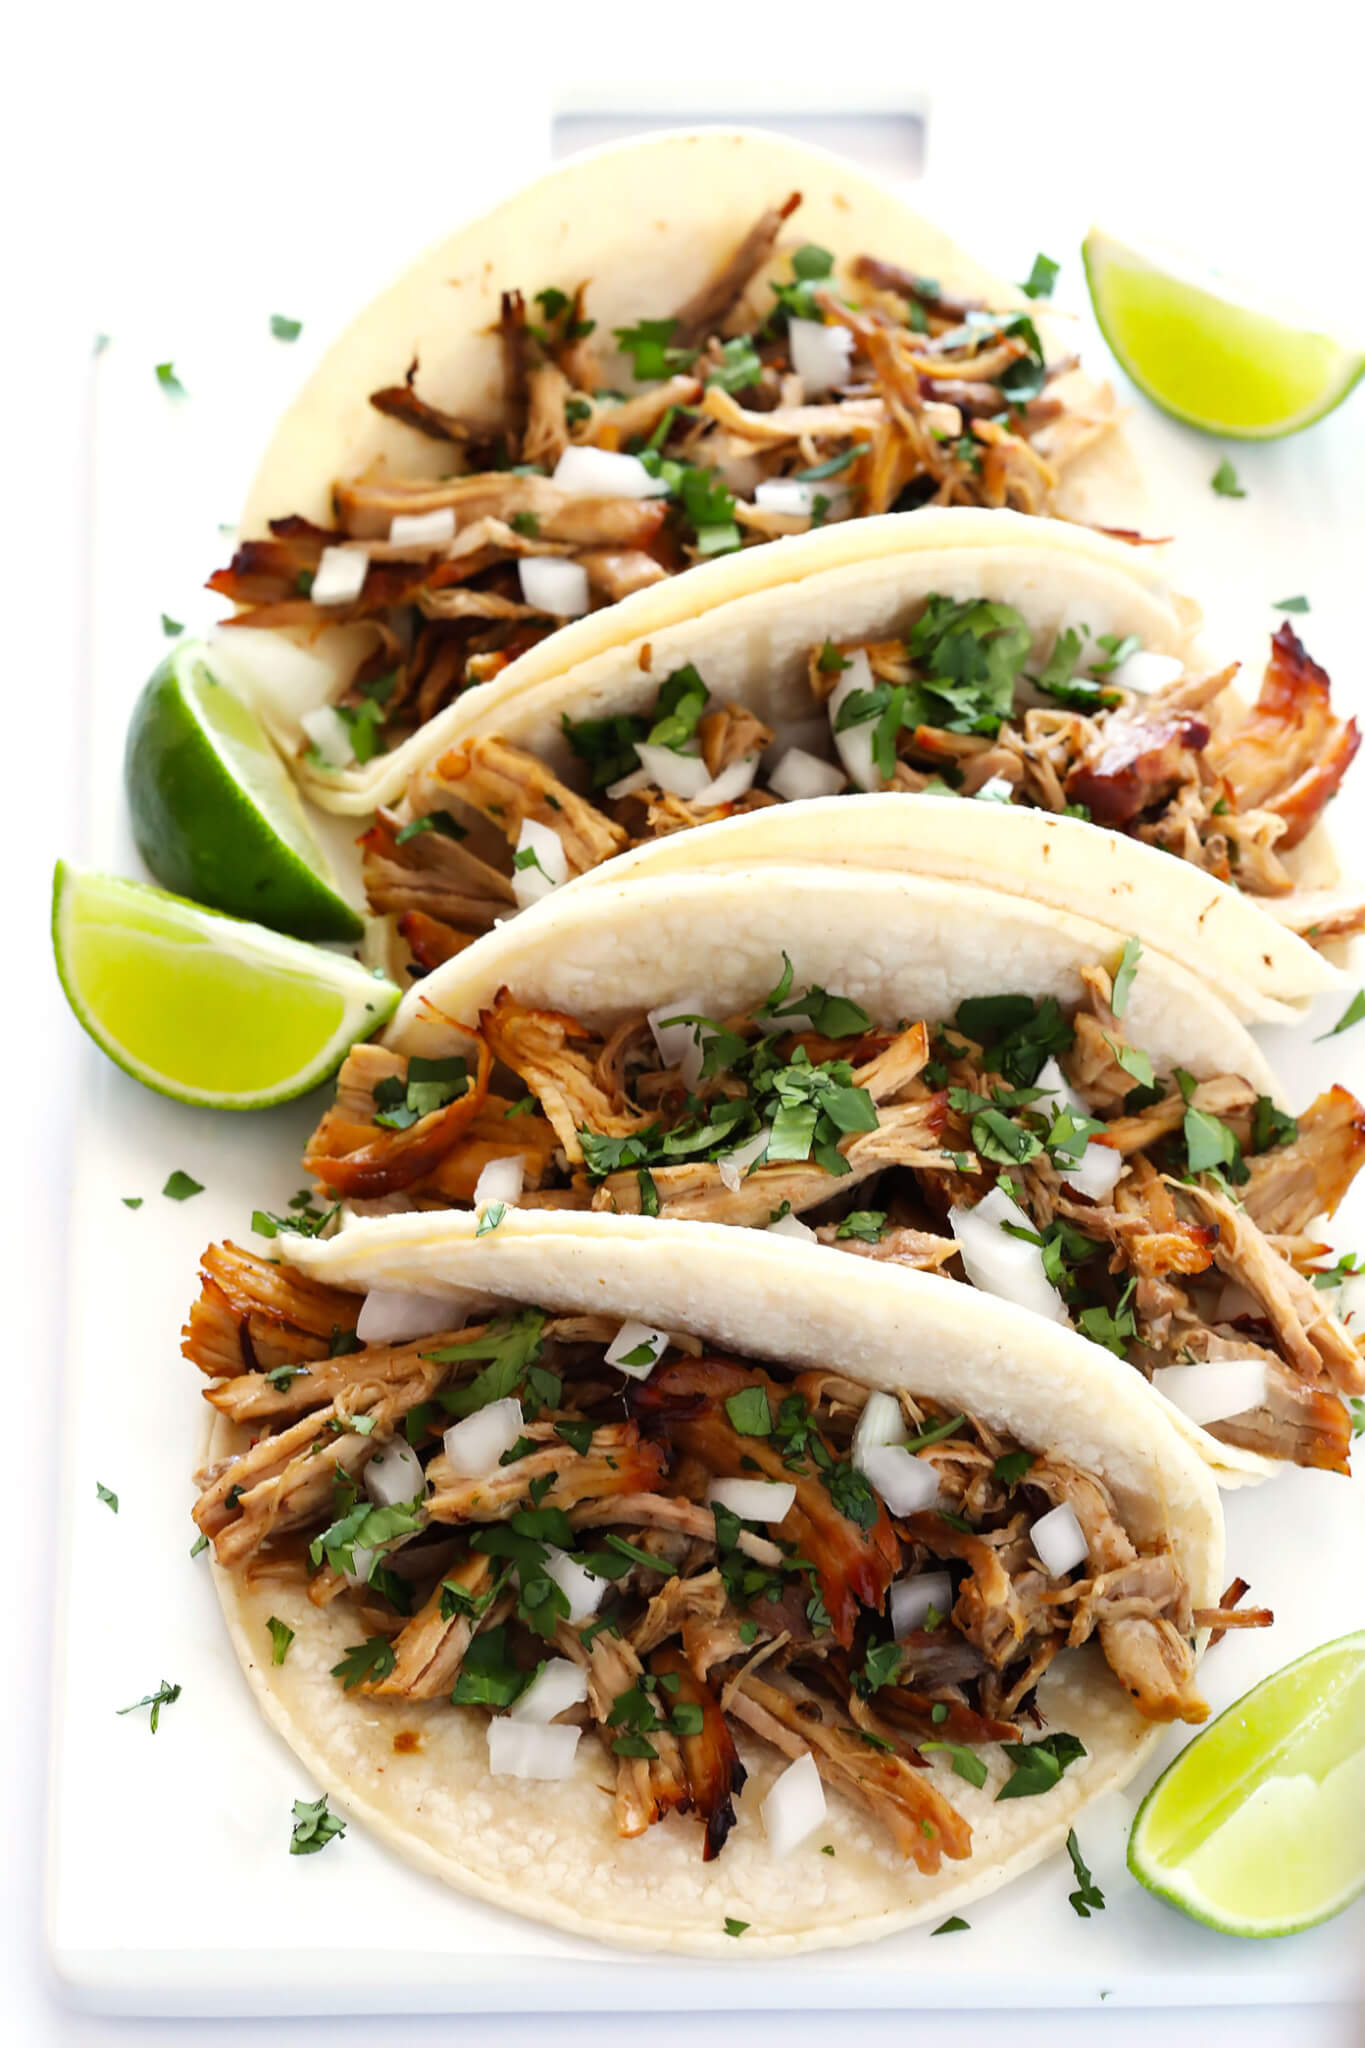 The BEST Slow Cooker Pork Carnitas! They're easy to make in the crock pot, made with my favorite Mexican seasonings, and so crispy and delicious! Perfect for tacos, enchiladas, salads, burritos, quesadillas and more. | gimmesomeoven.com